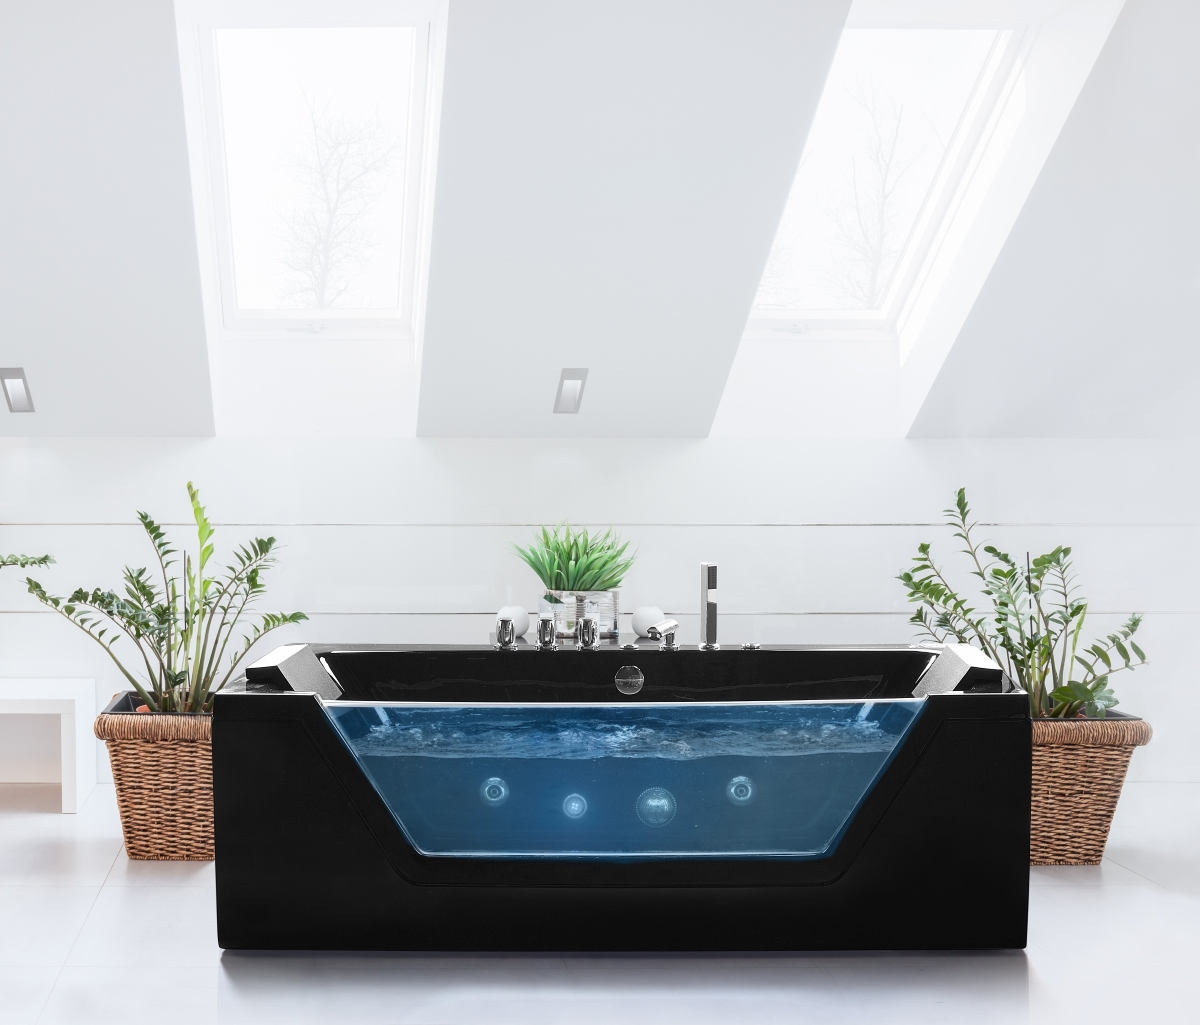 whirlpool badewanne samurai schwarz 10 massage d sen glas led massage g nstig supply24. Black Bedroom Furniture Sets. Home Design Ideas